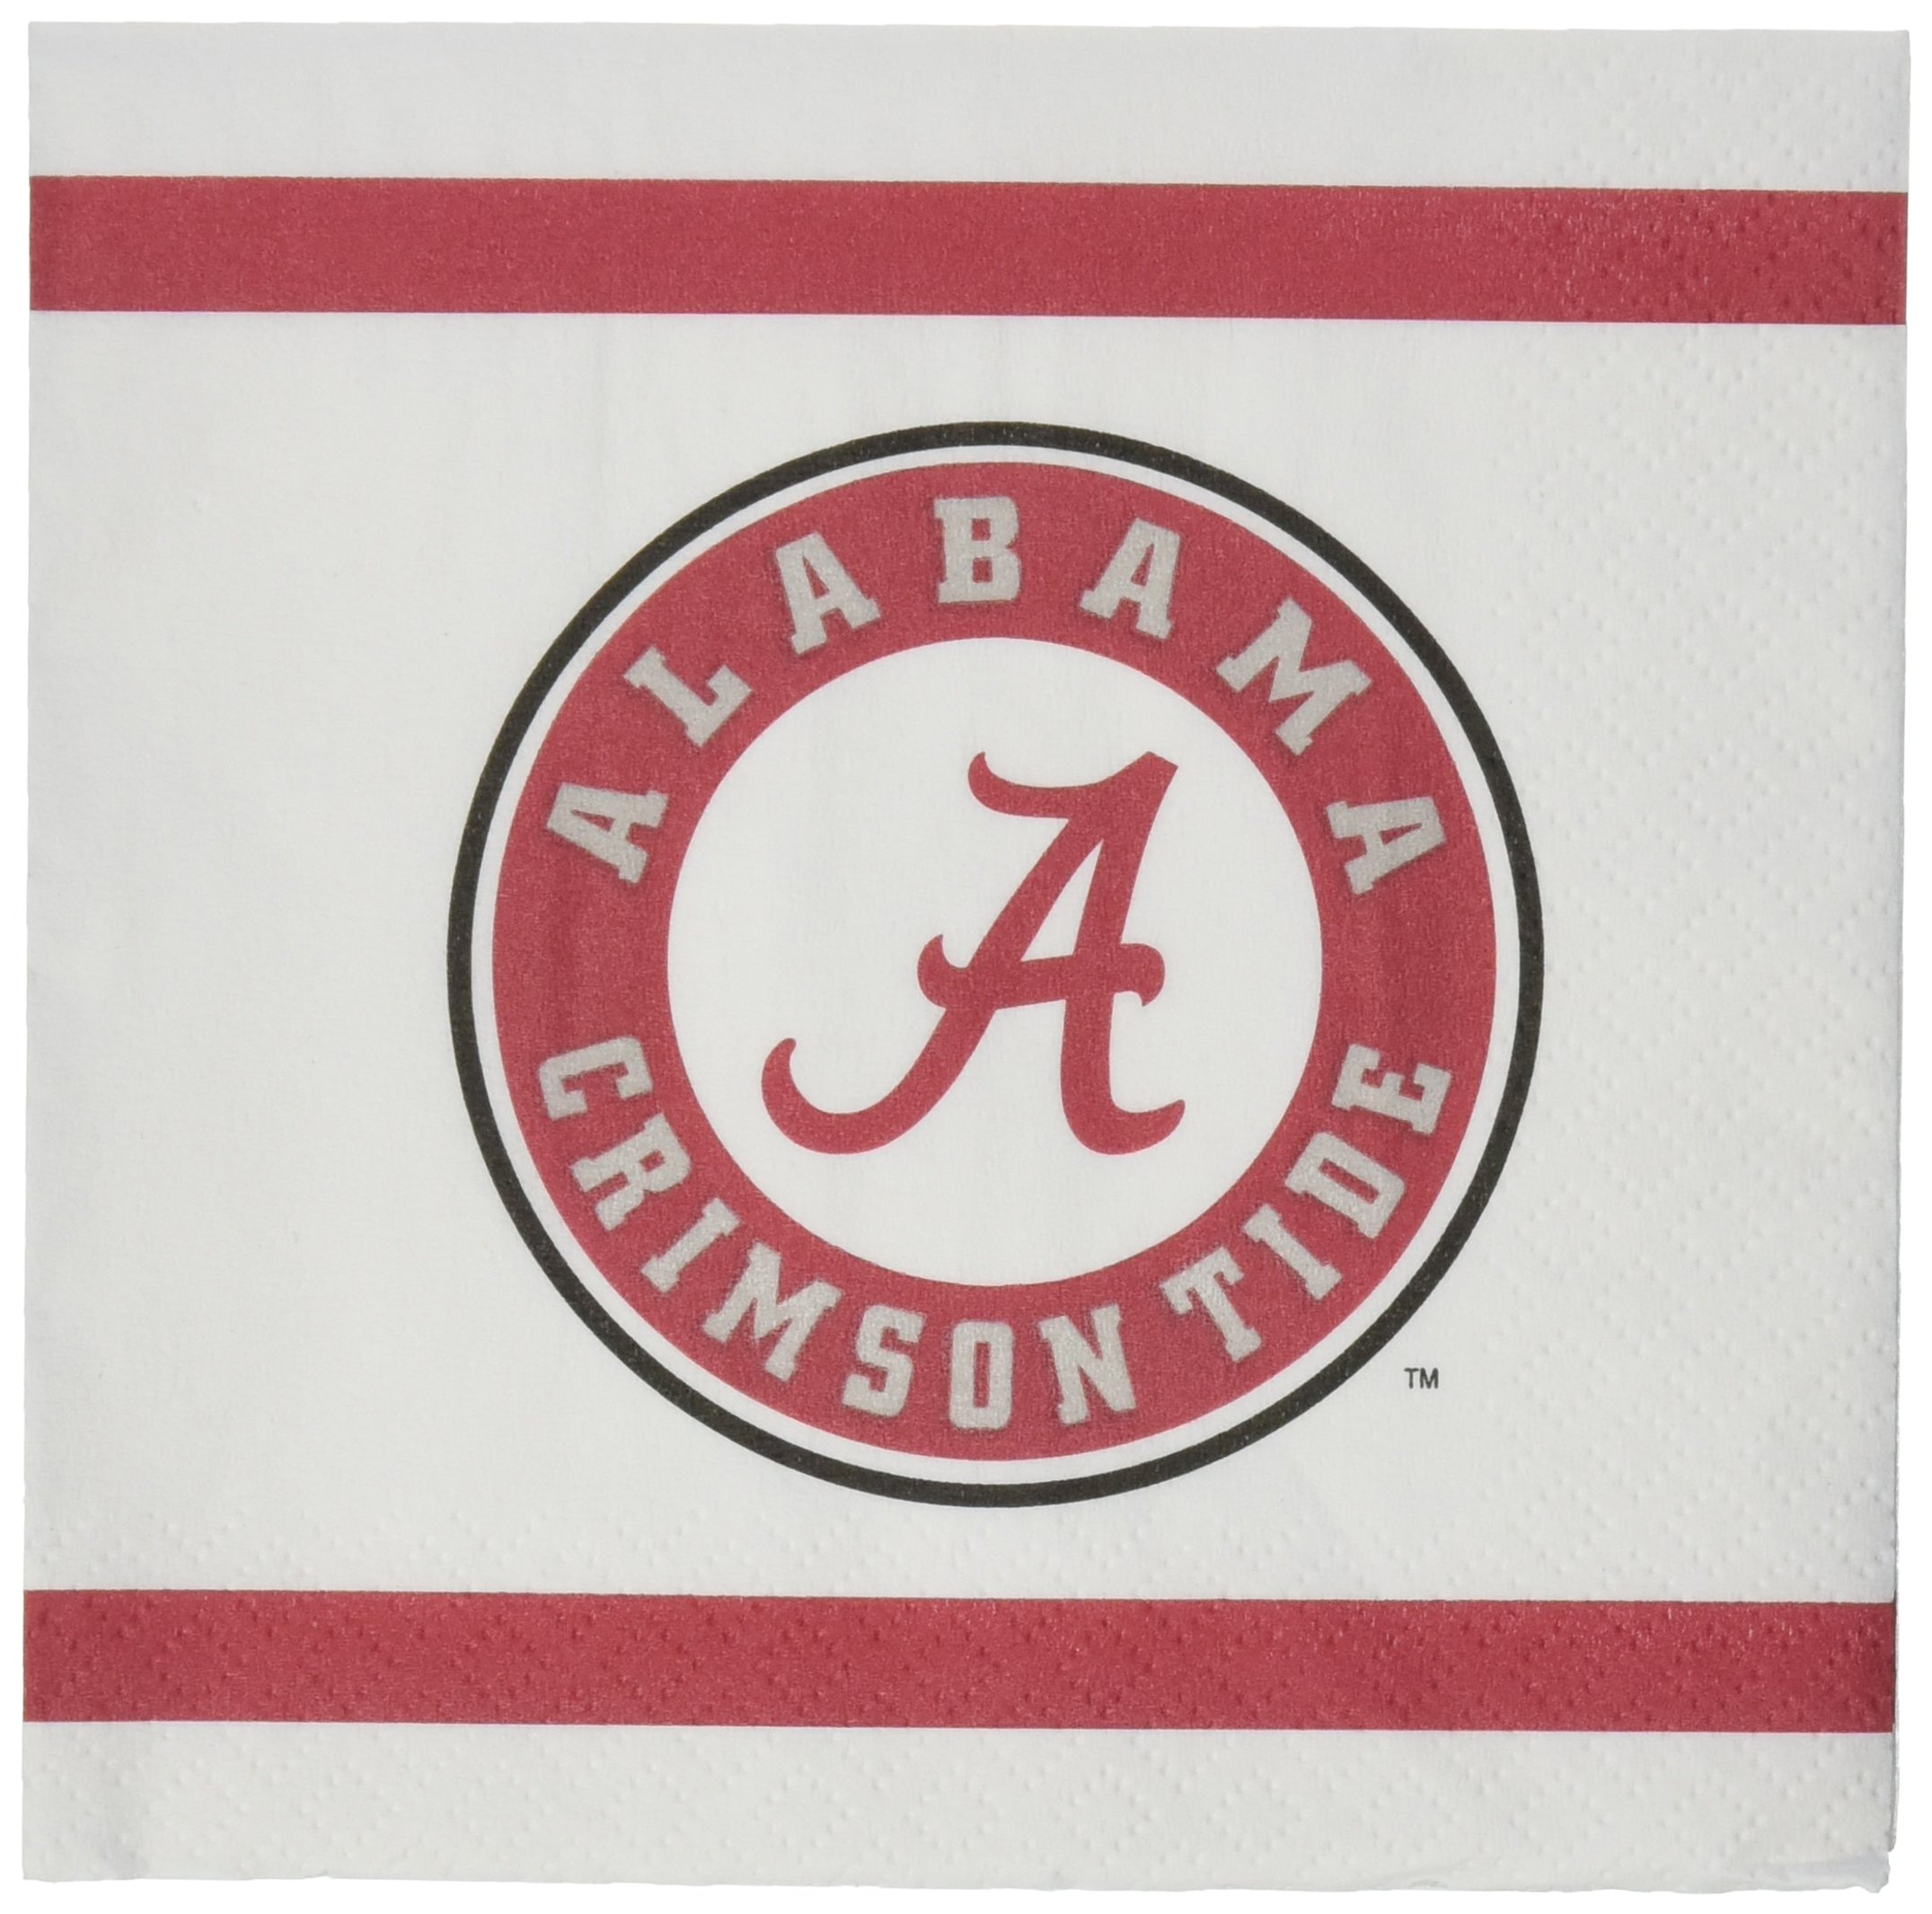 Mayflower Distributing Company 24Count University of Alabama Beverage Napkin, Multicolor by Mayflower Distributing Company